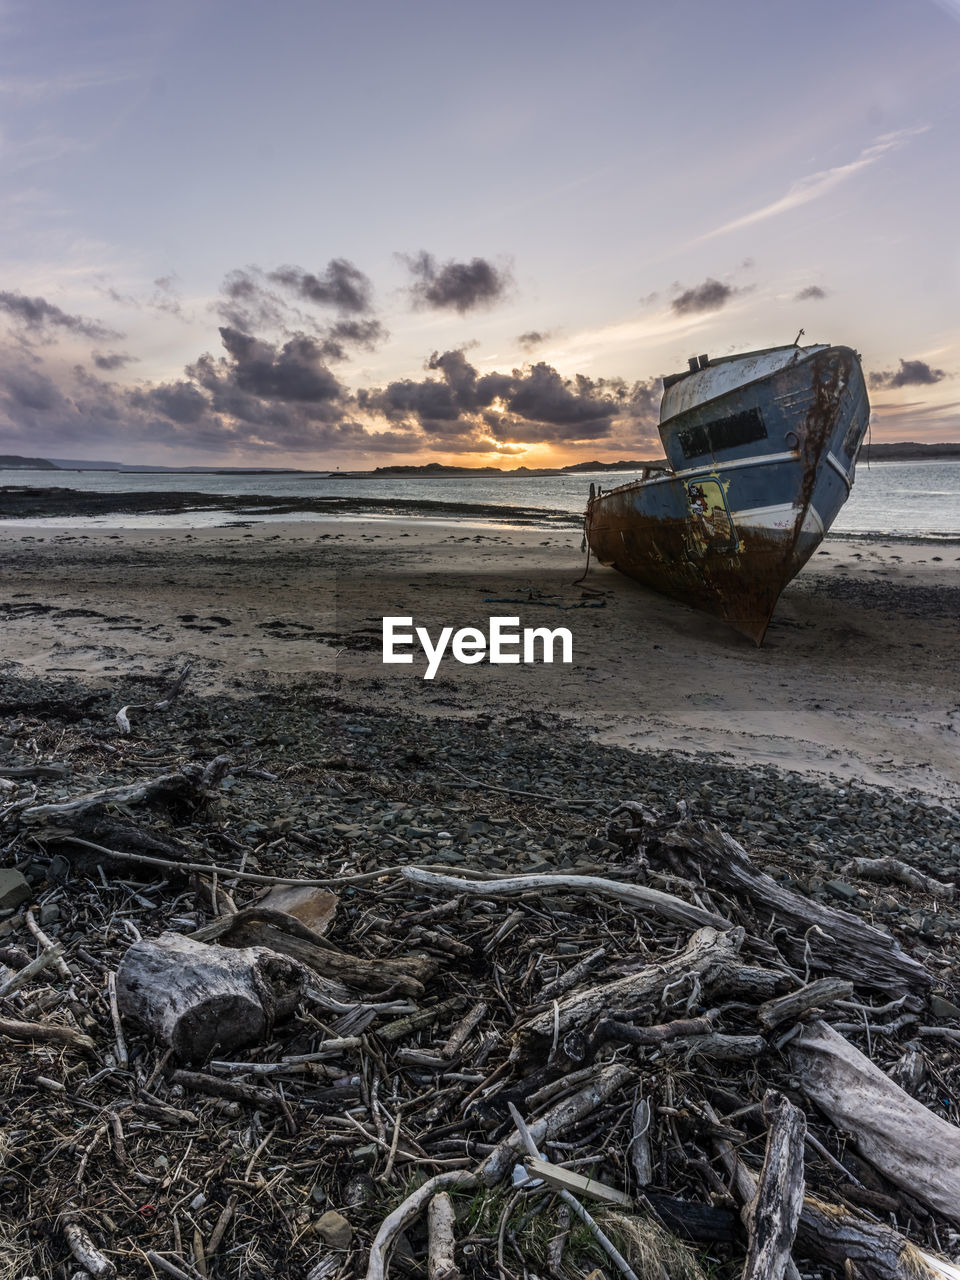 beach, sky, land, sunset, transportation, nautical vessel, water, cloud - sky, sea, mode of transportation, scenics - nature, tranquility, beauty in nature, tranquil scene, nature, no people, abandoned, moored, non-urban scene, horizon over water, outdoors, deterioration, fishing boat, low tide, fishing industry